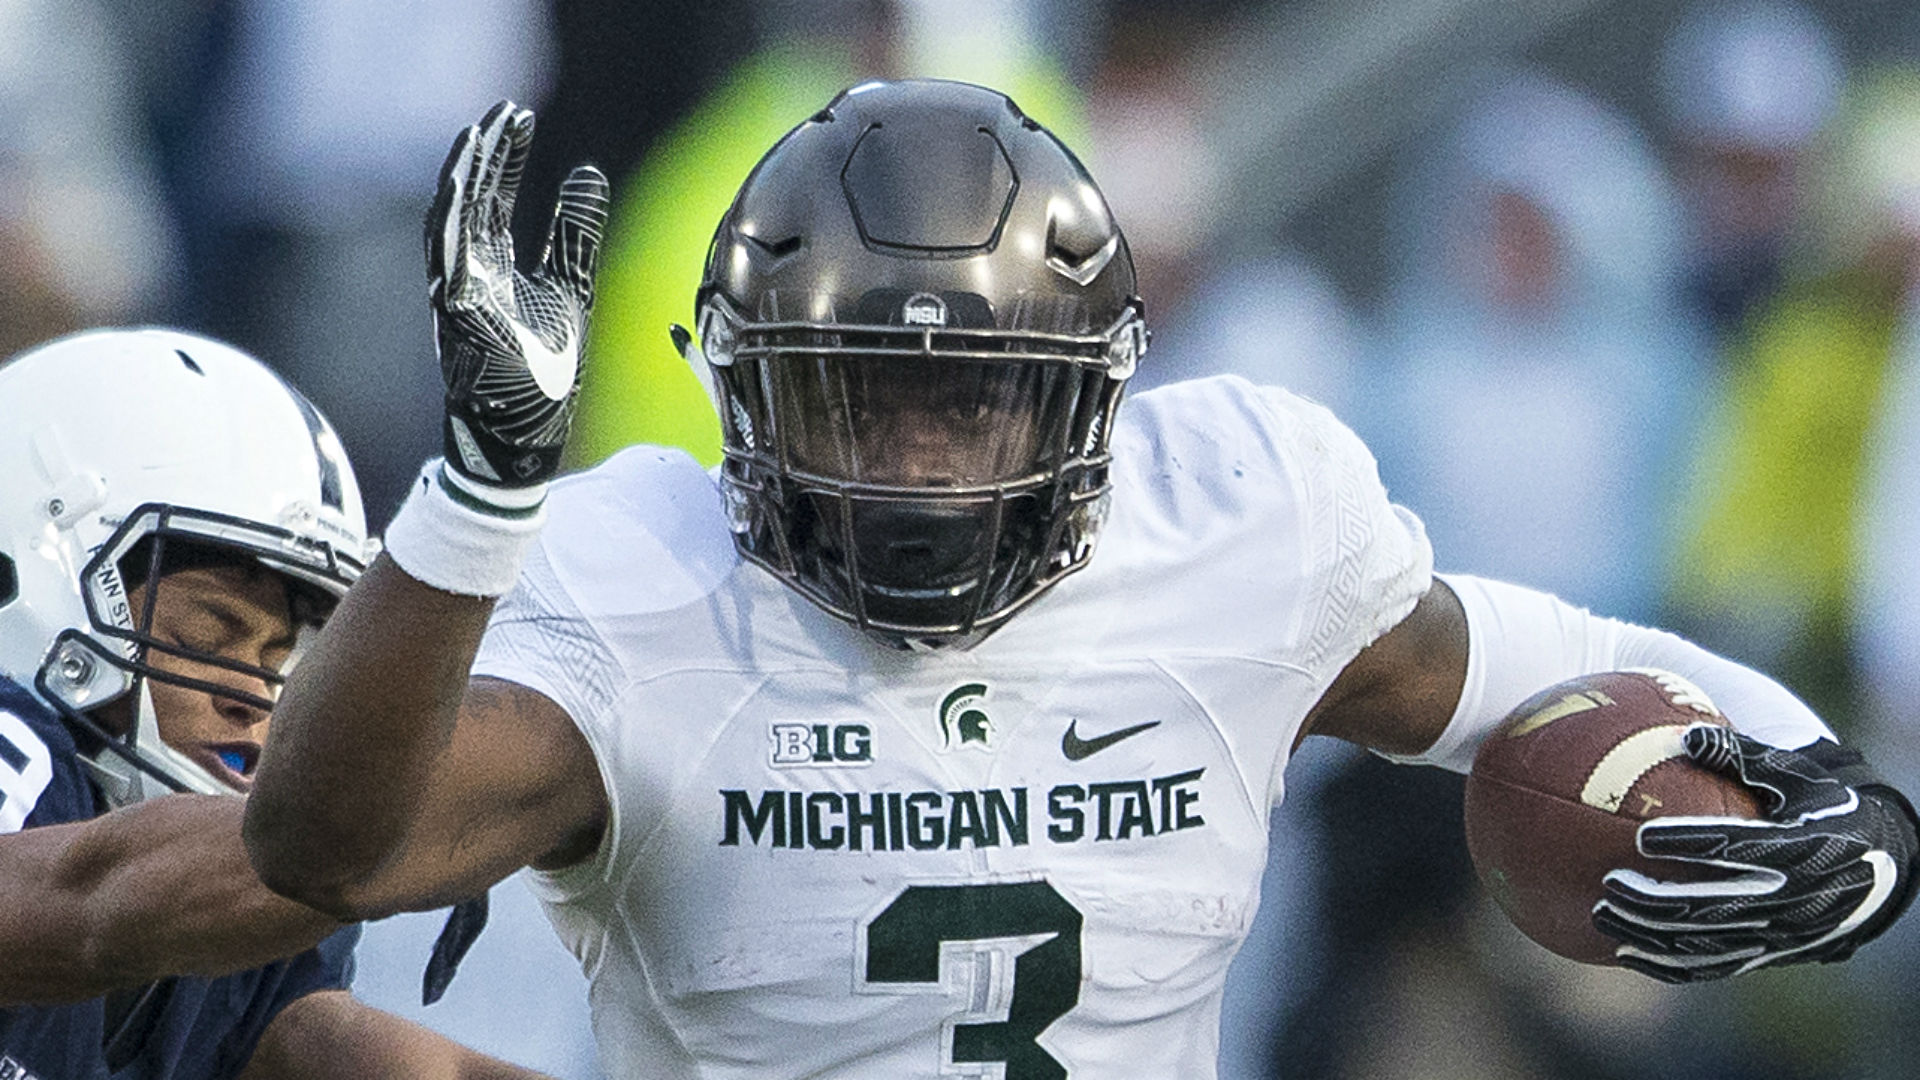 MSU running back charged with driving on suspended license